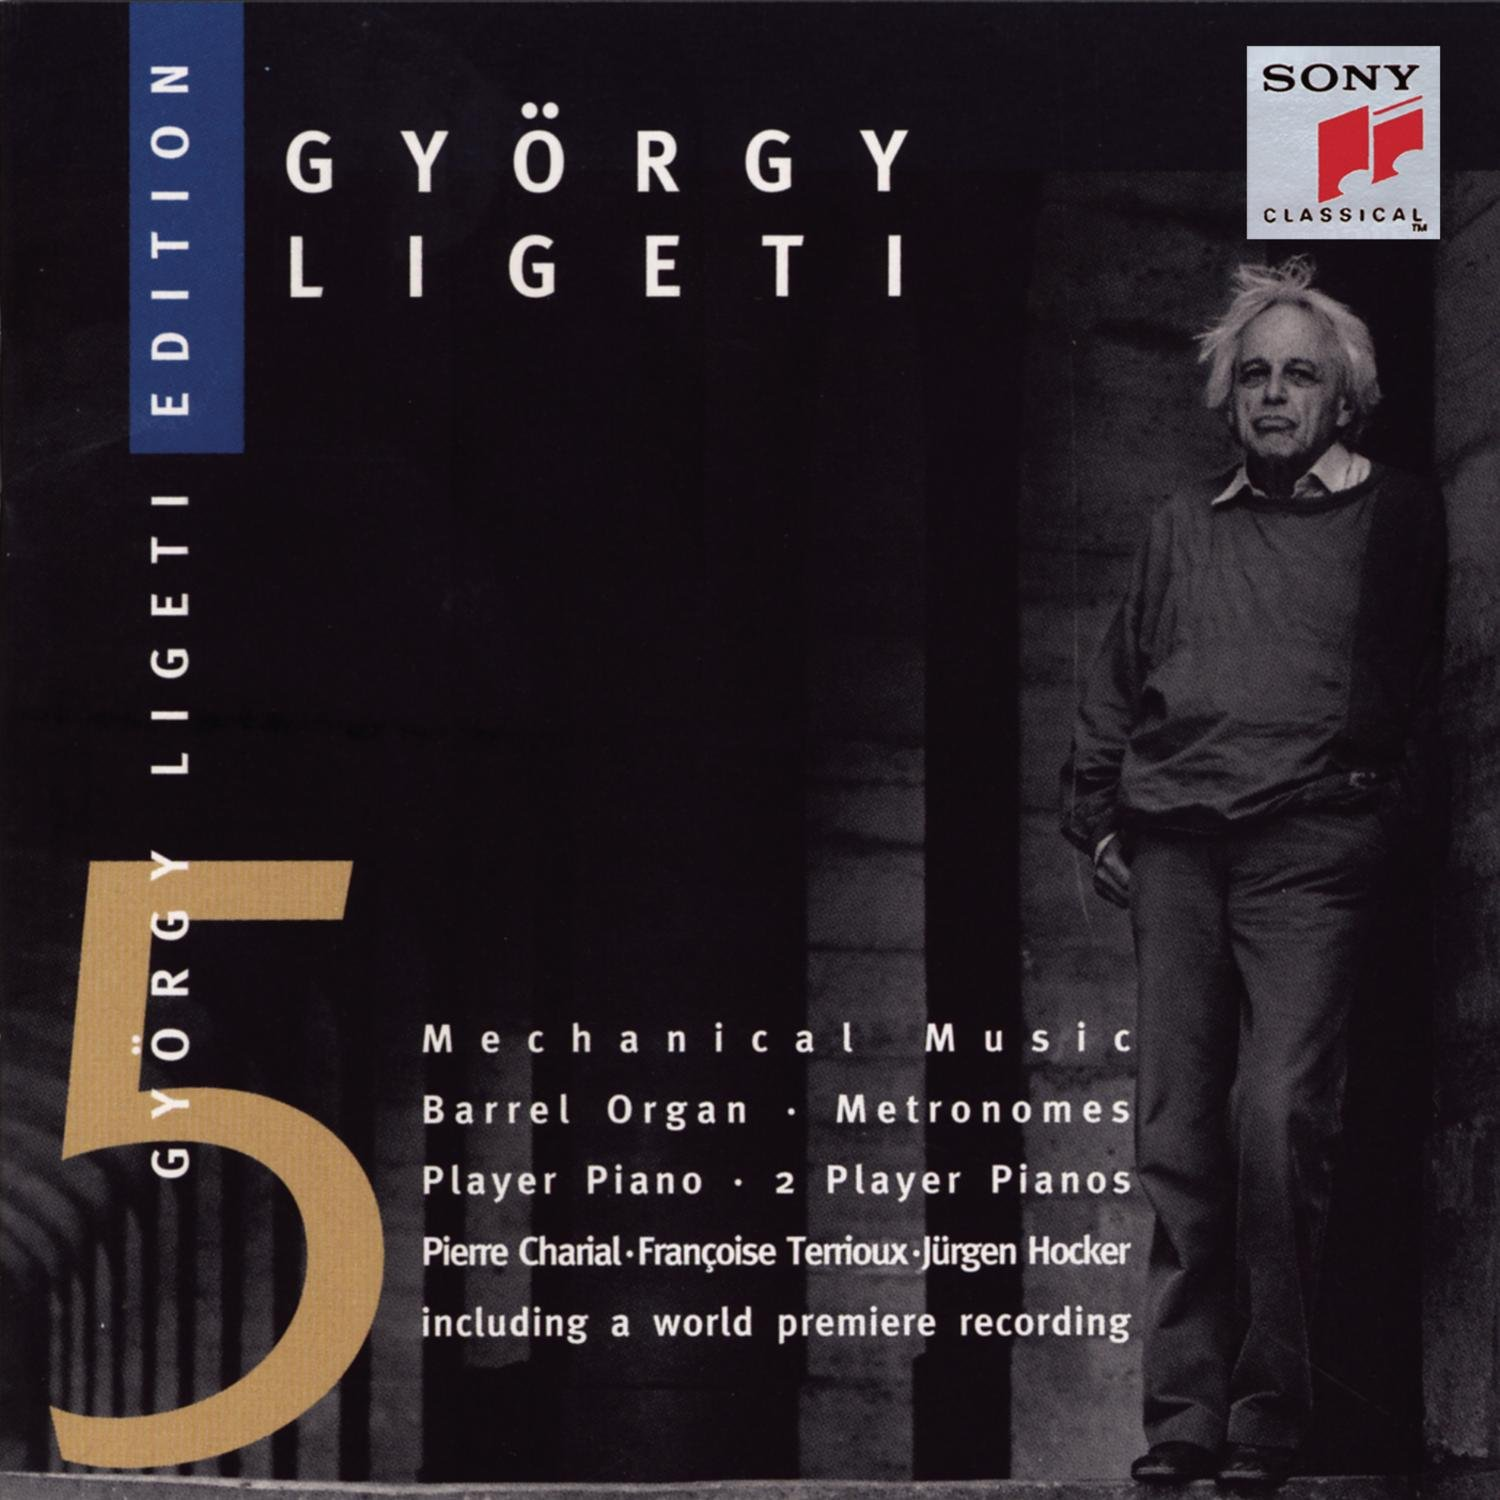 Mechanical Music by Gyorgy Ligeti: Amazon.co.uk: Music